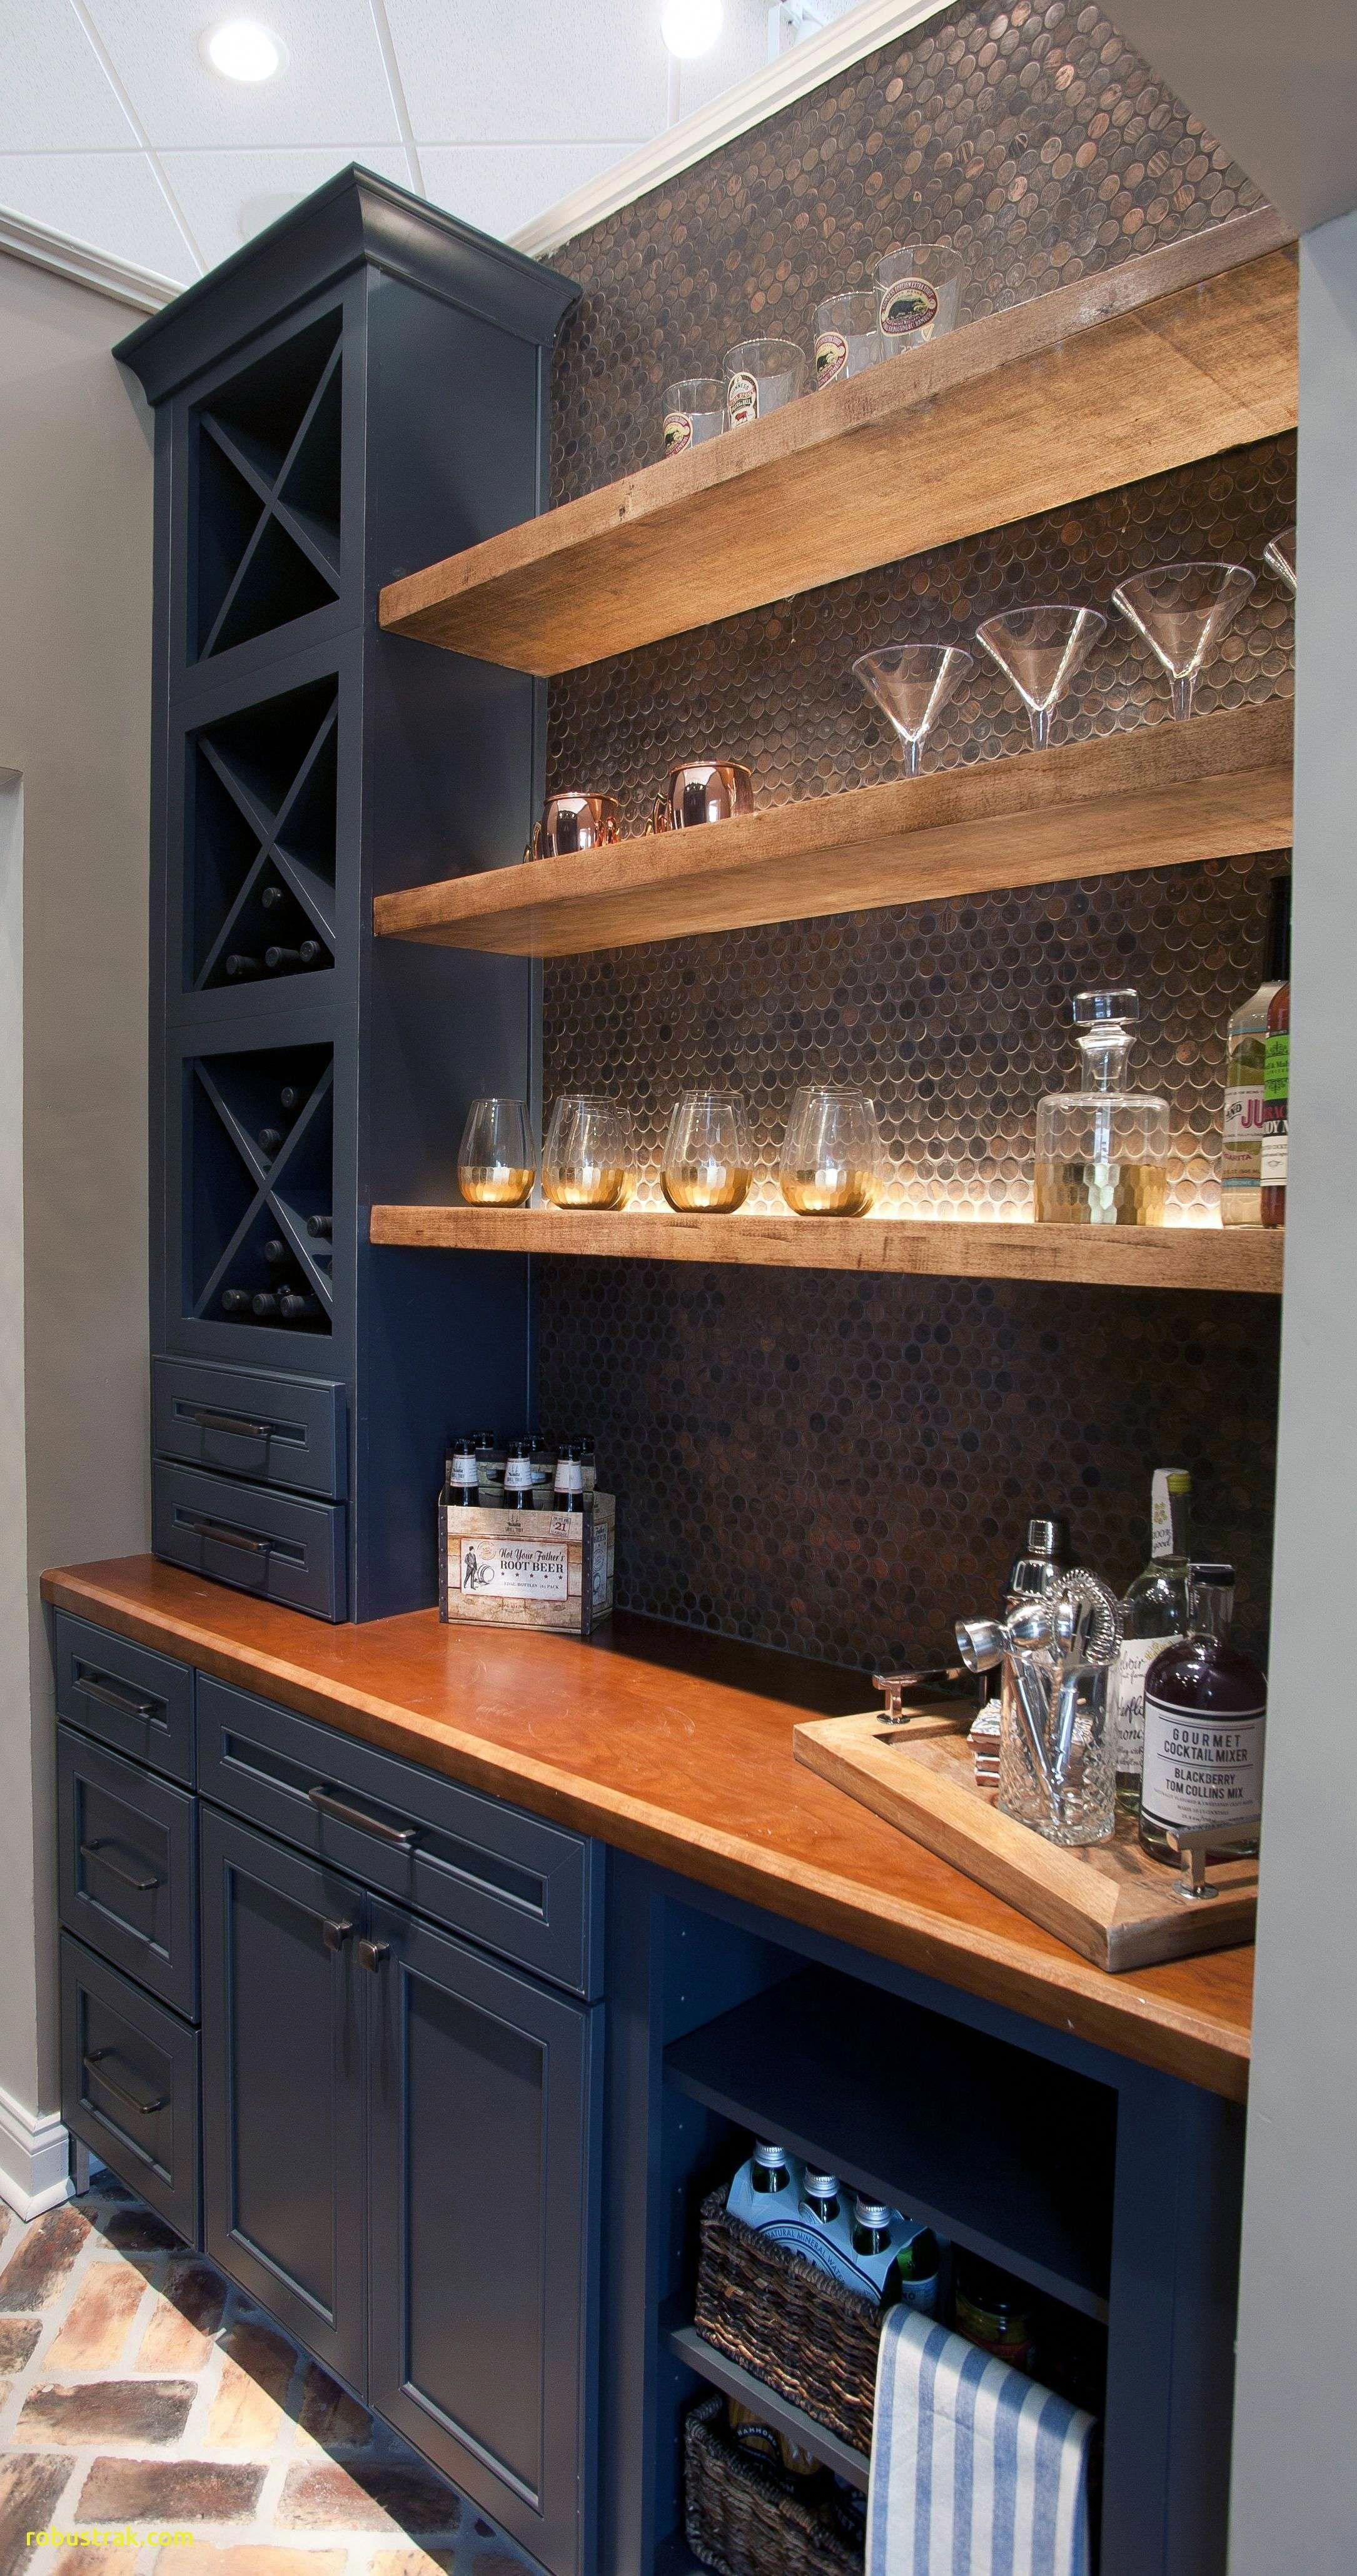 Best traditional basement bar ideas one and only homestre.com ...